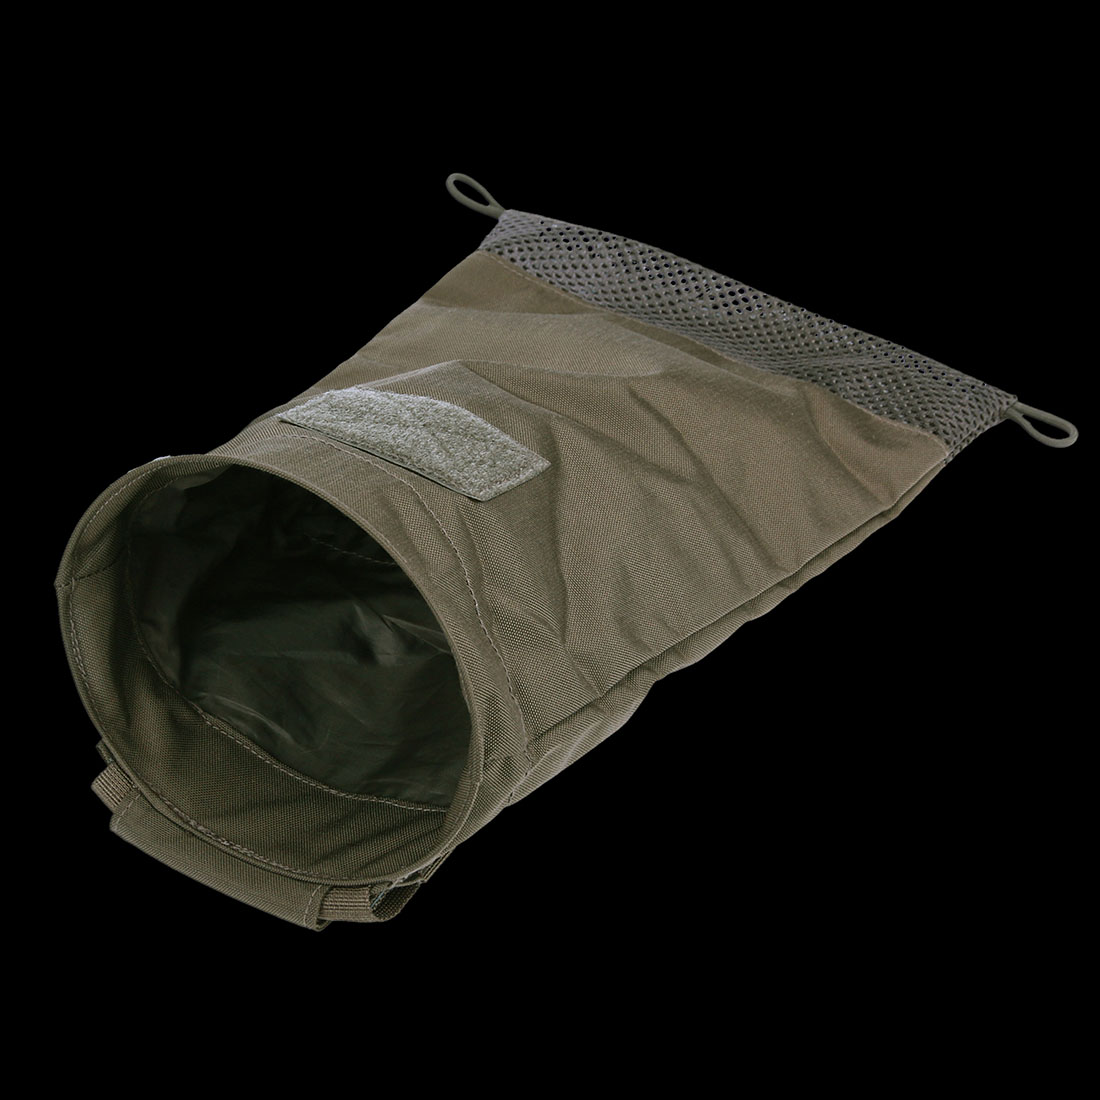 TF-2215 Dump Pouch Foldable Ranger Green